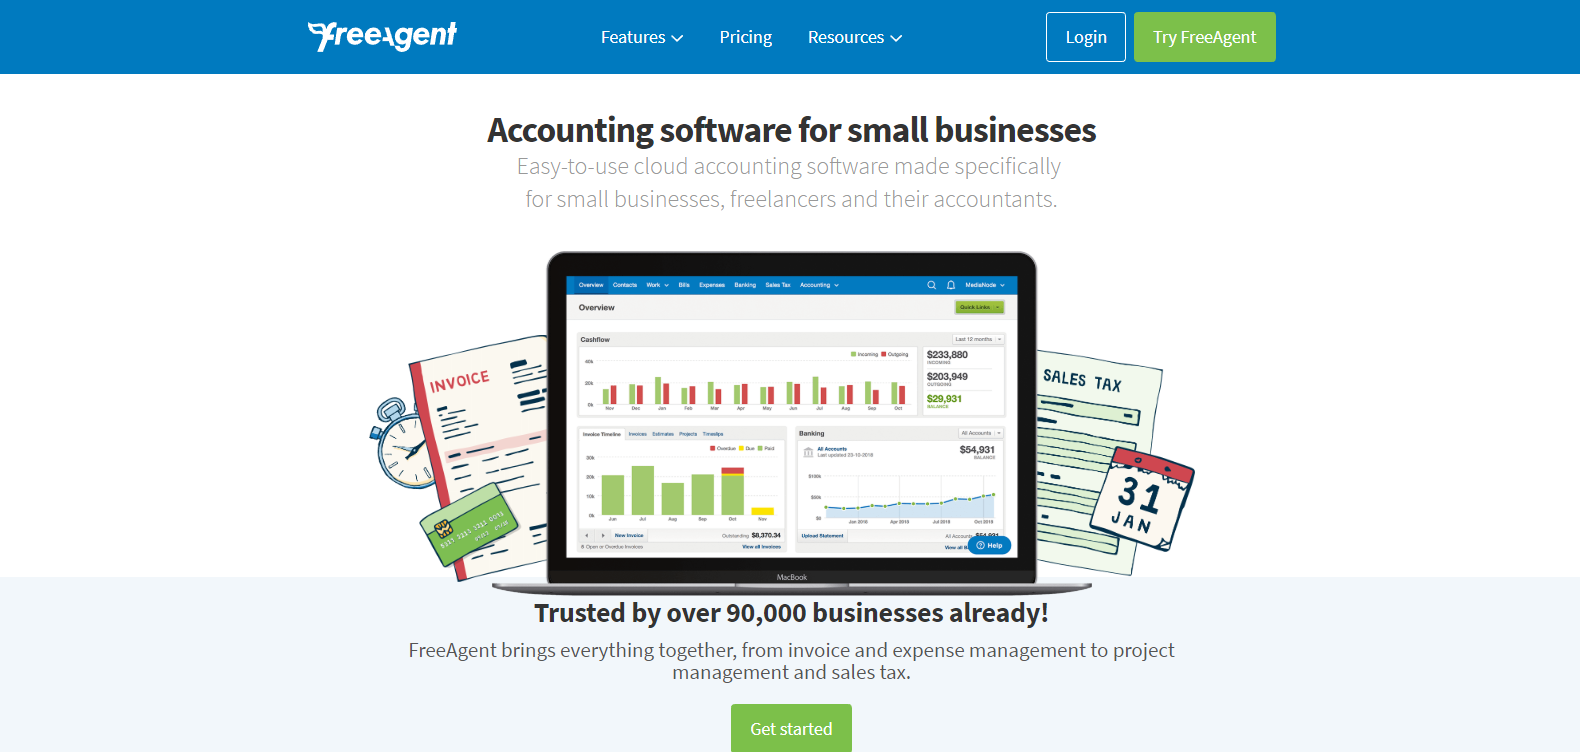 A screenshot of the FreeAgent accounting software.